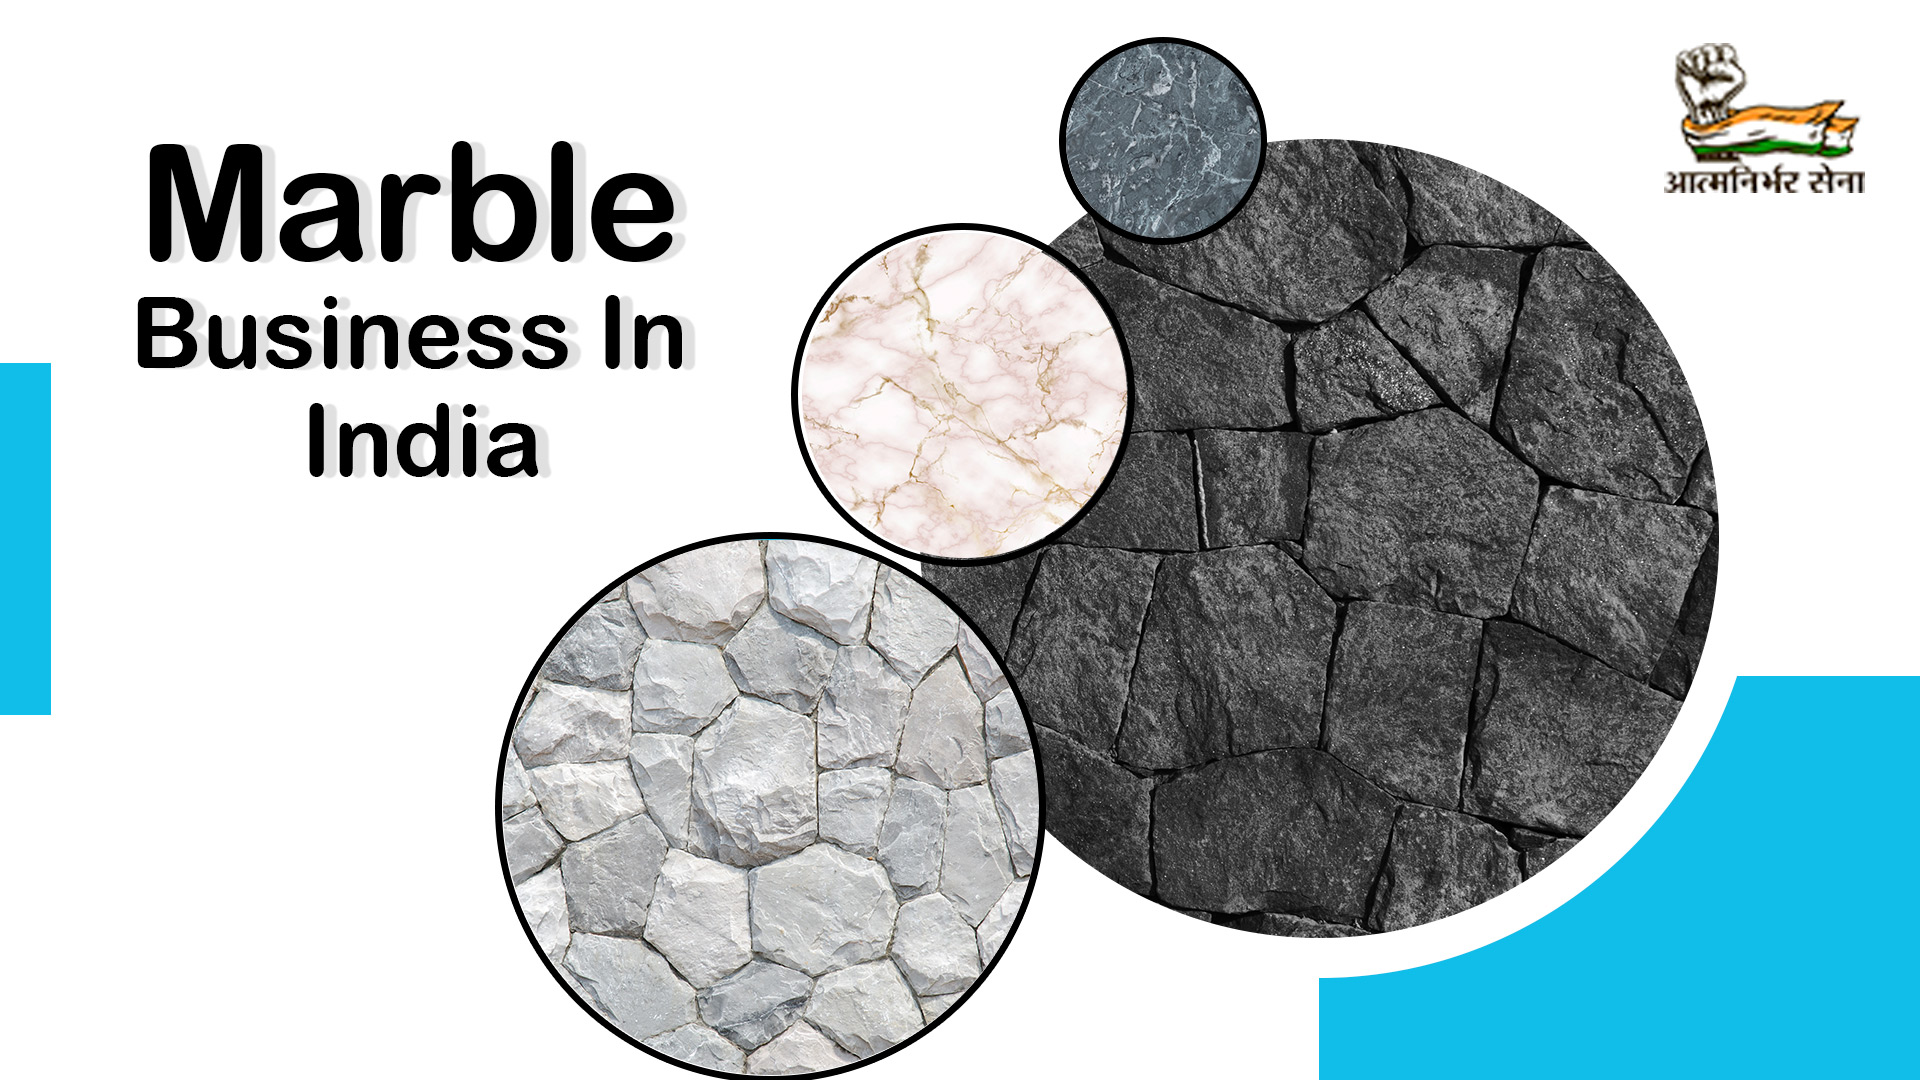 Marble Business in India: An Upbeat Business that Ensures Lucrativeness